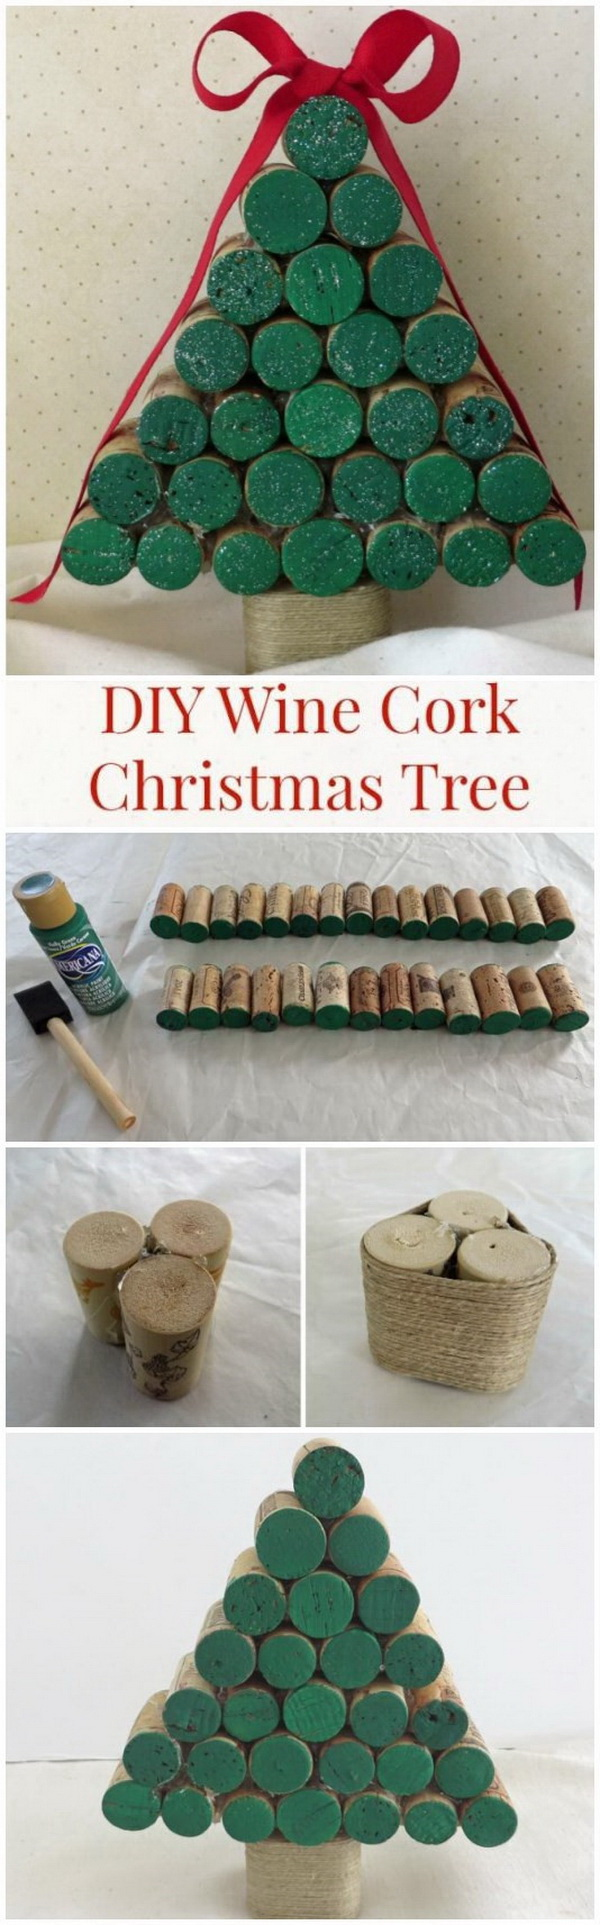 DIY Wine Cork Christmas Tree. A great way to upcycle the wine corks with this easy and fun Christmas craft! A great holiday craft idea both for kids and adults!